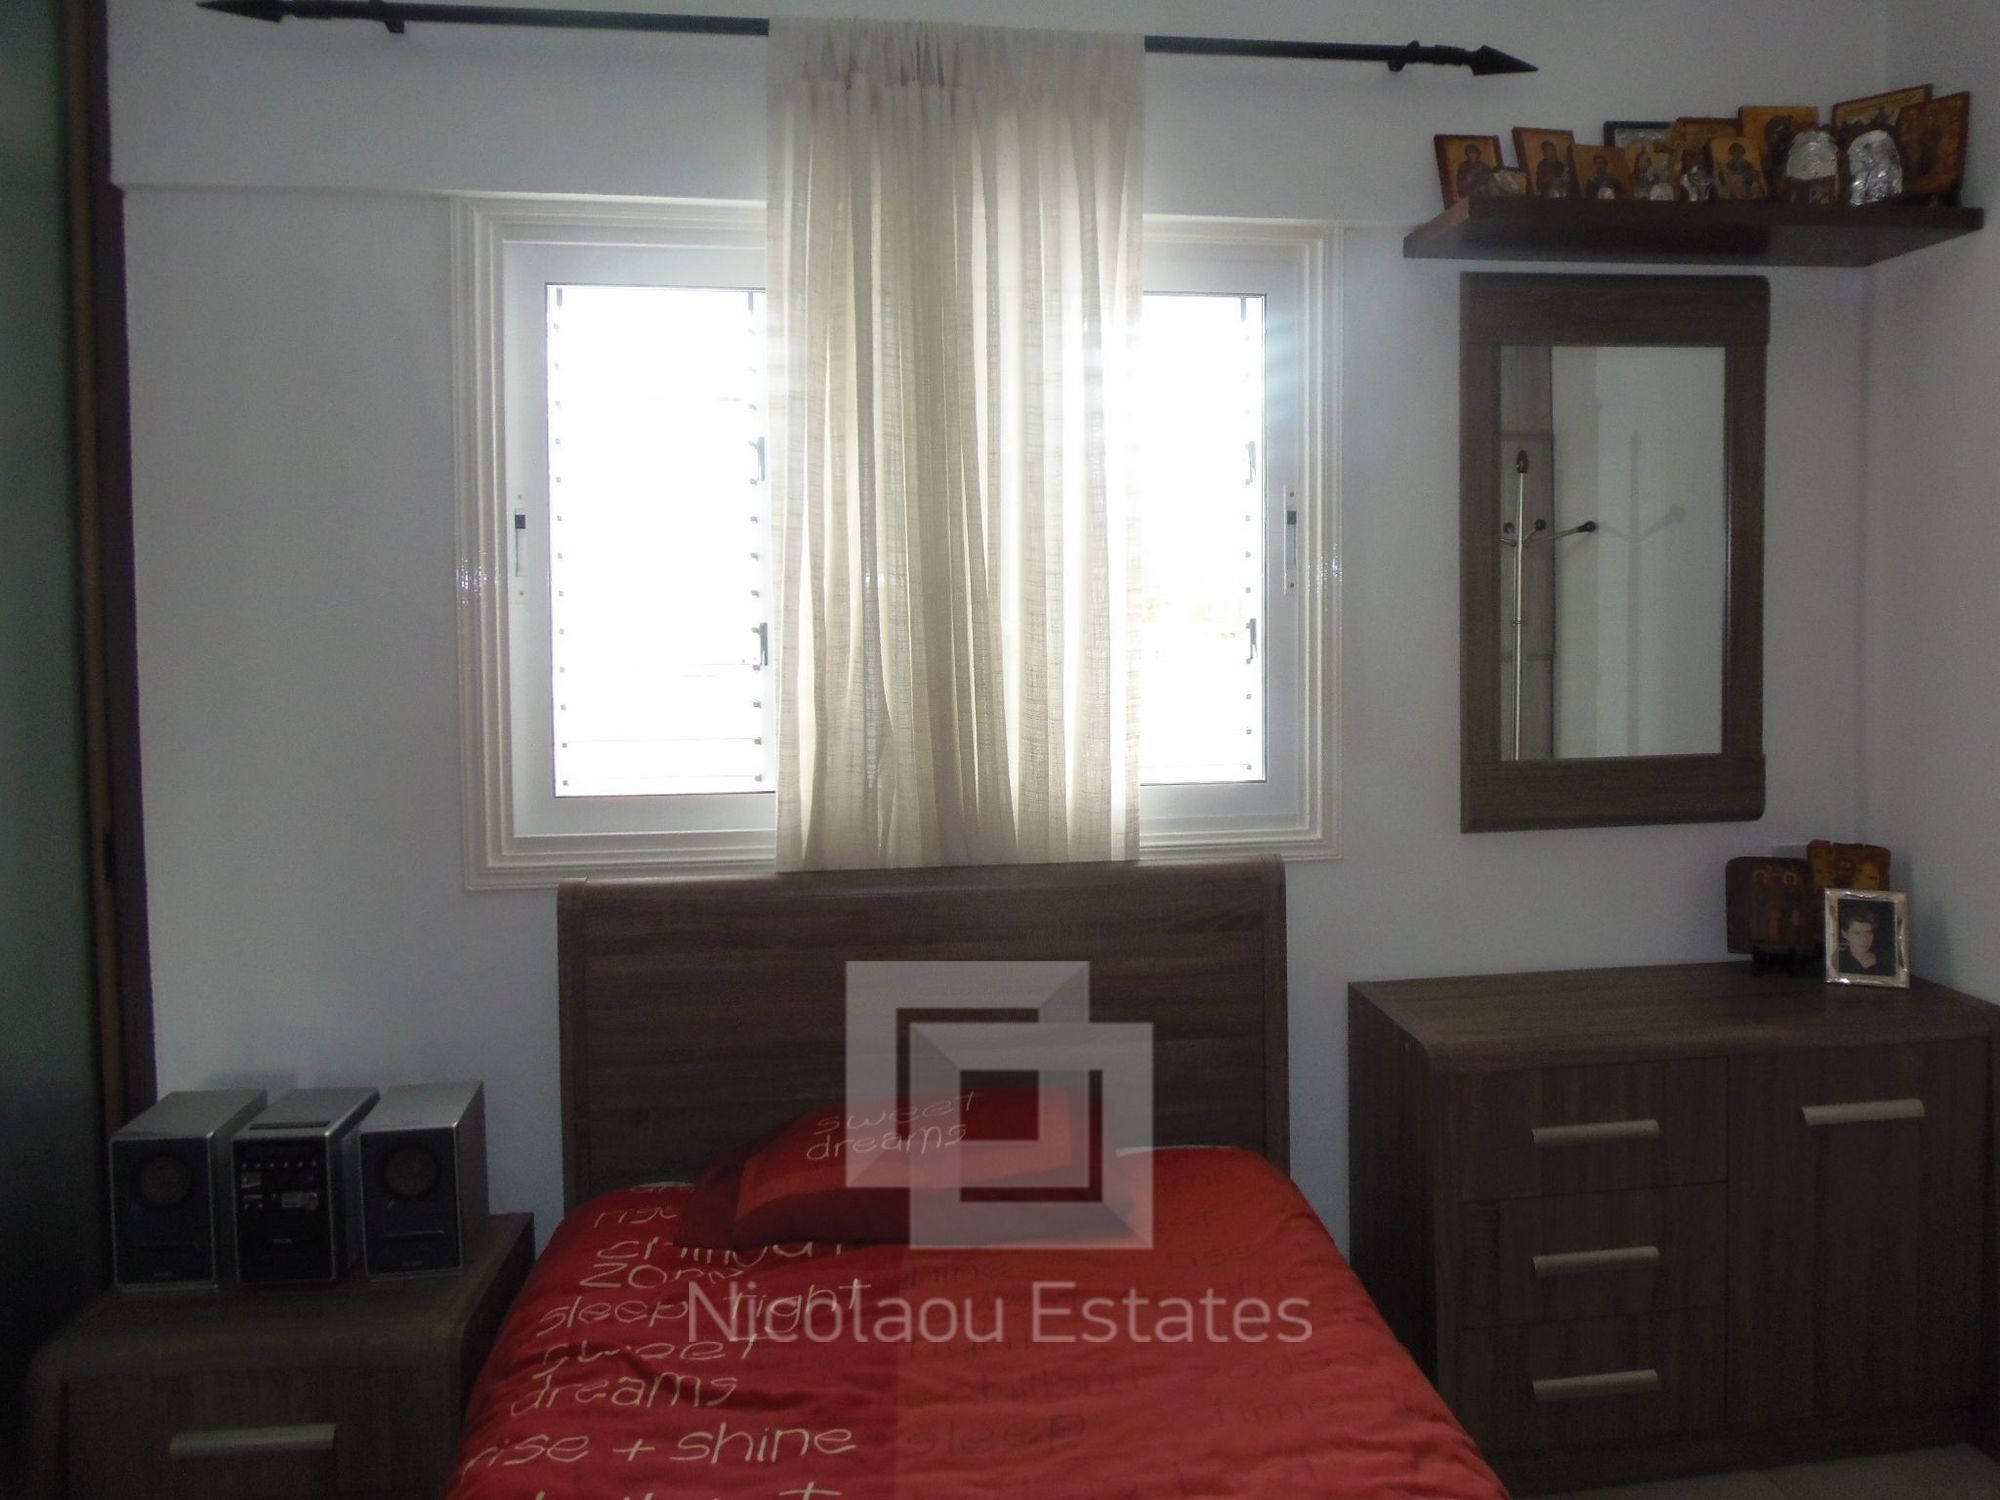 Archived Two Bedroom Apartment In Strovolos Close To Stavrou Avenue At A Bargain Price Eur